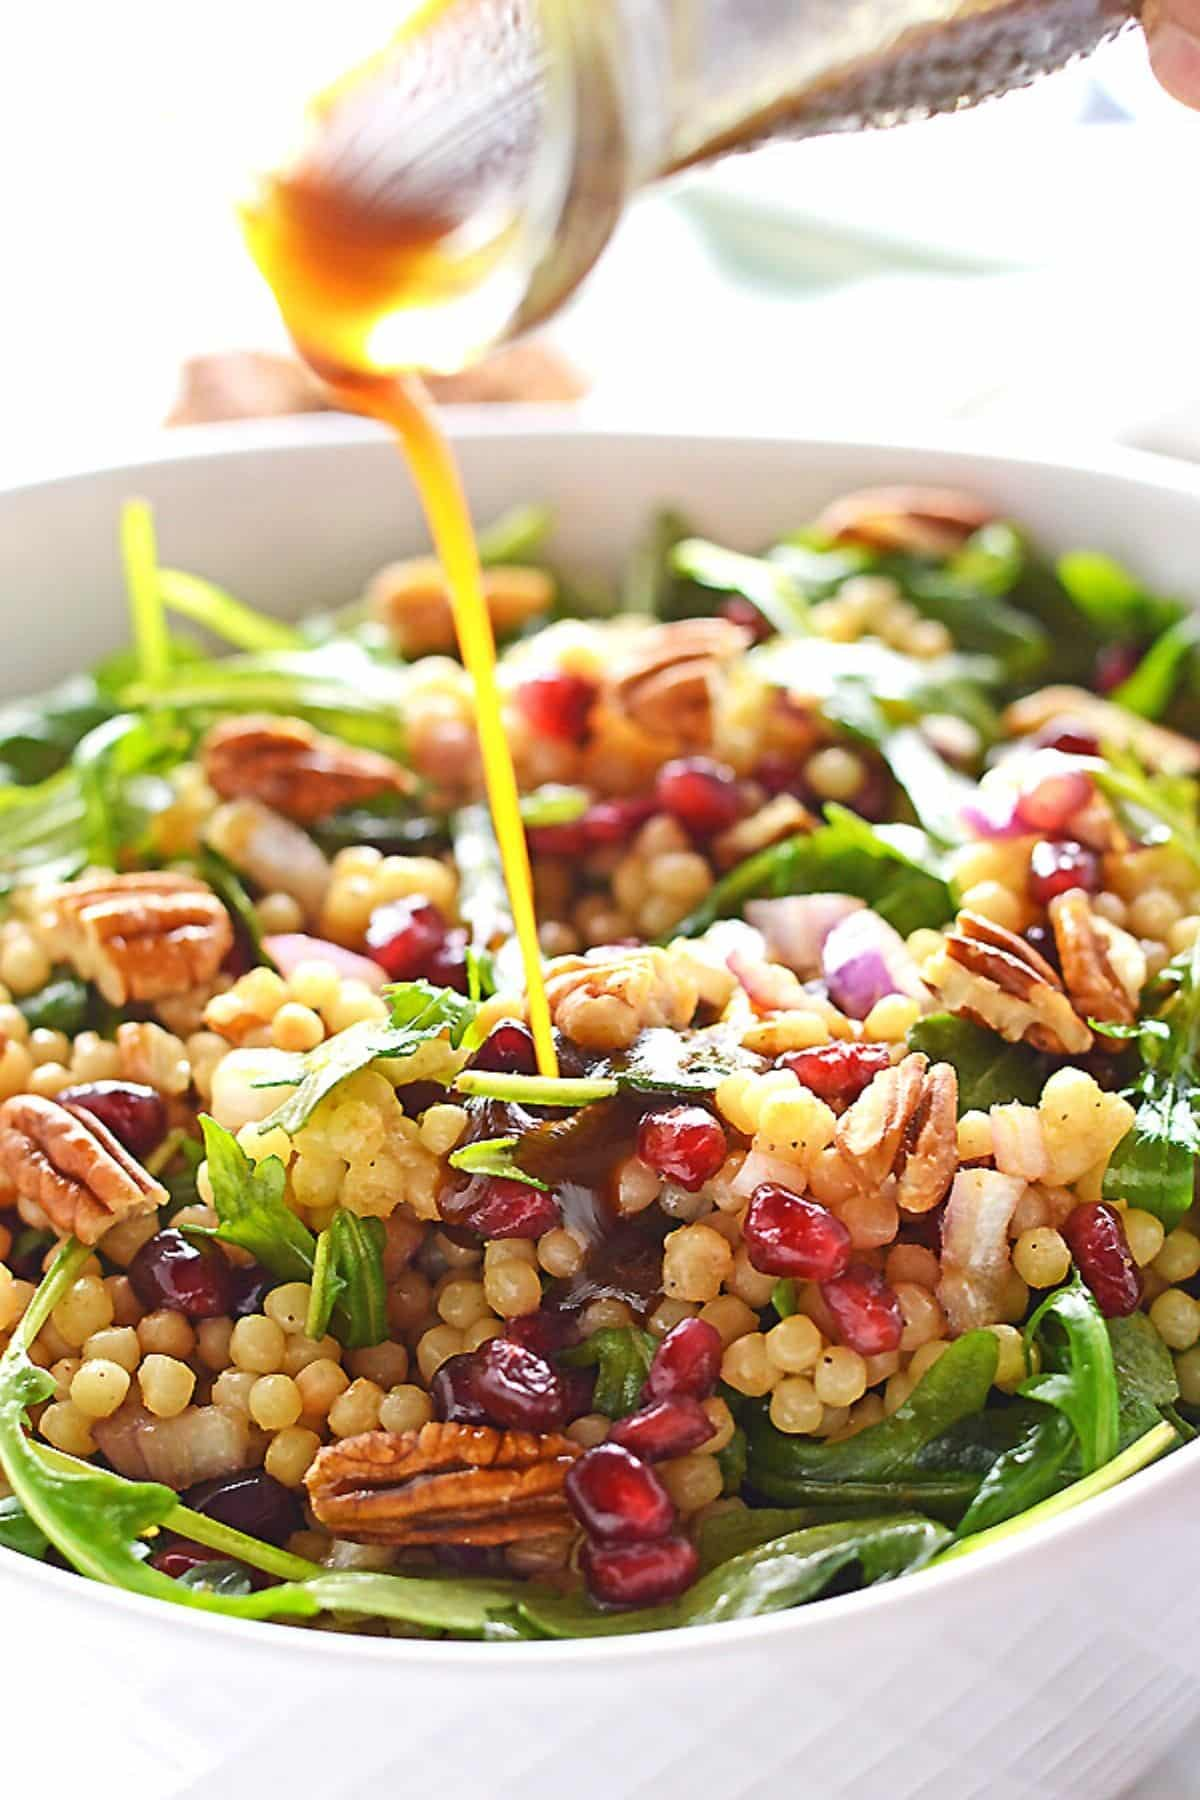 Pearl couscous salad in a deep white bowl with vinegrette pouring over it.